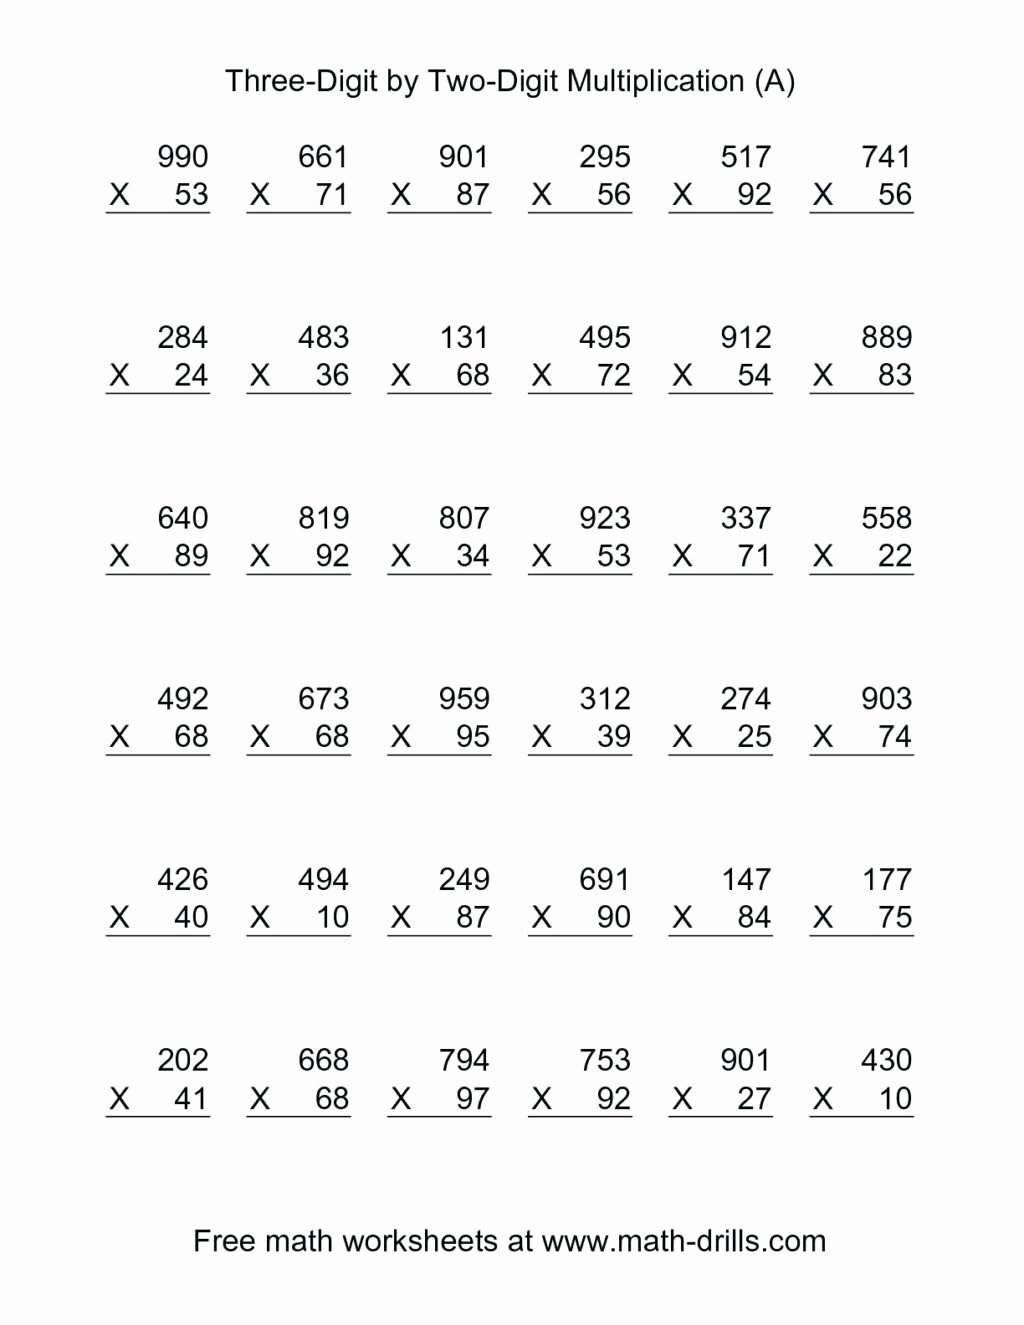 Multiplication Worksheets Printable Free Fresh Worksheet Printableematics Worksheets Image Inspirations